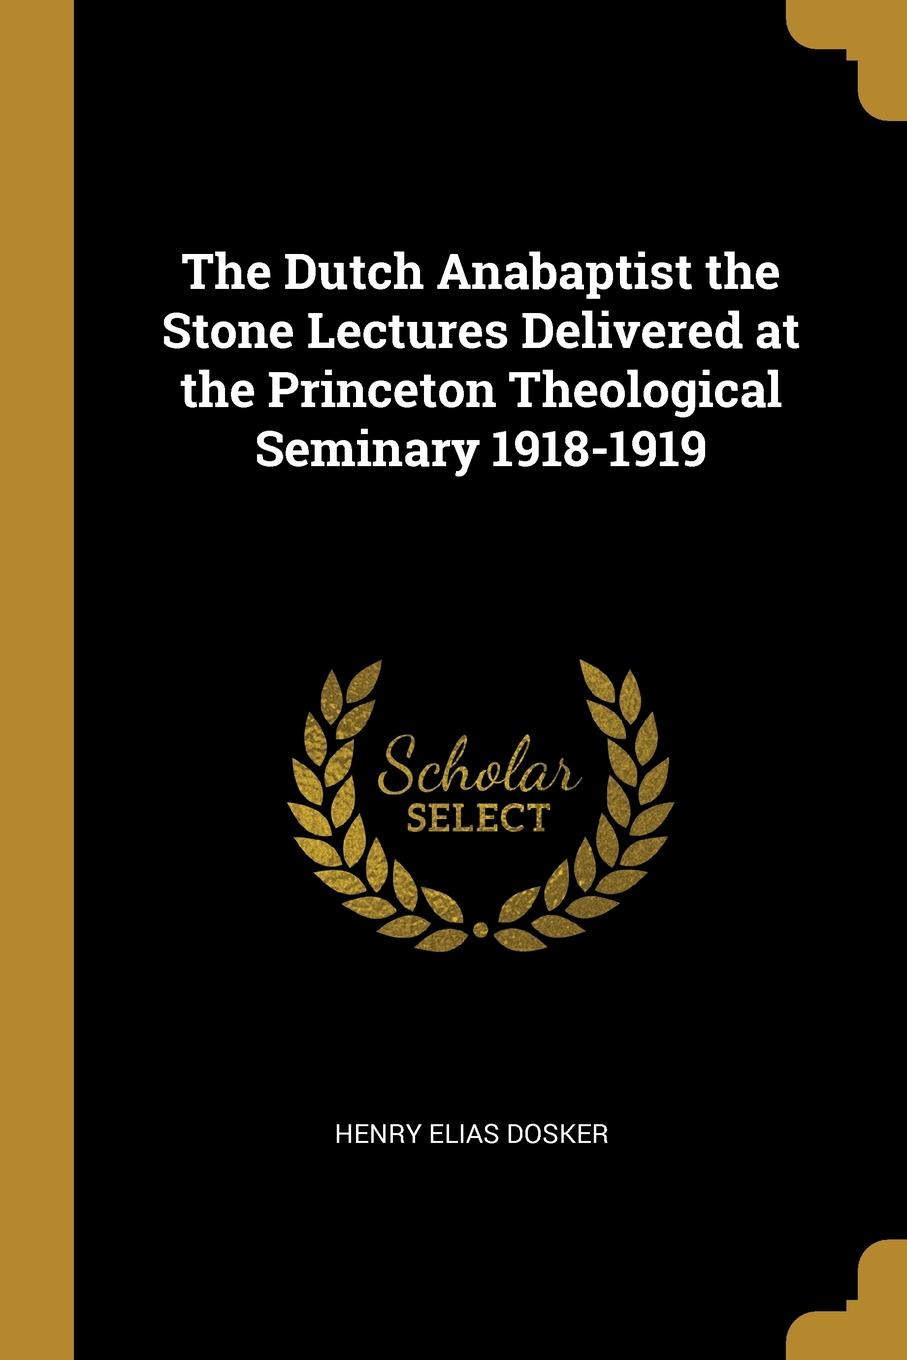 Henry Elias Dosker The Dutch Anabaptist the Stone Lectures Delivered at the Princeton Theological Seminary 1918-1919